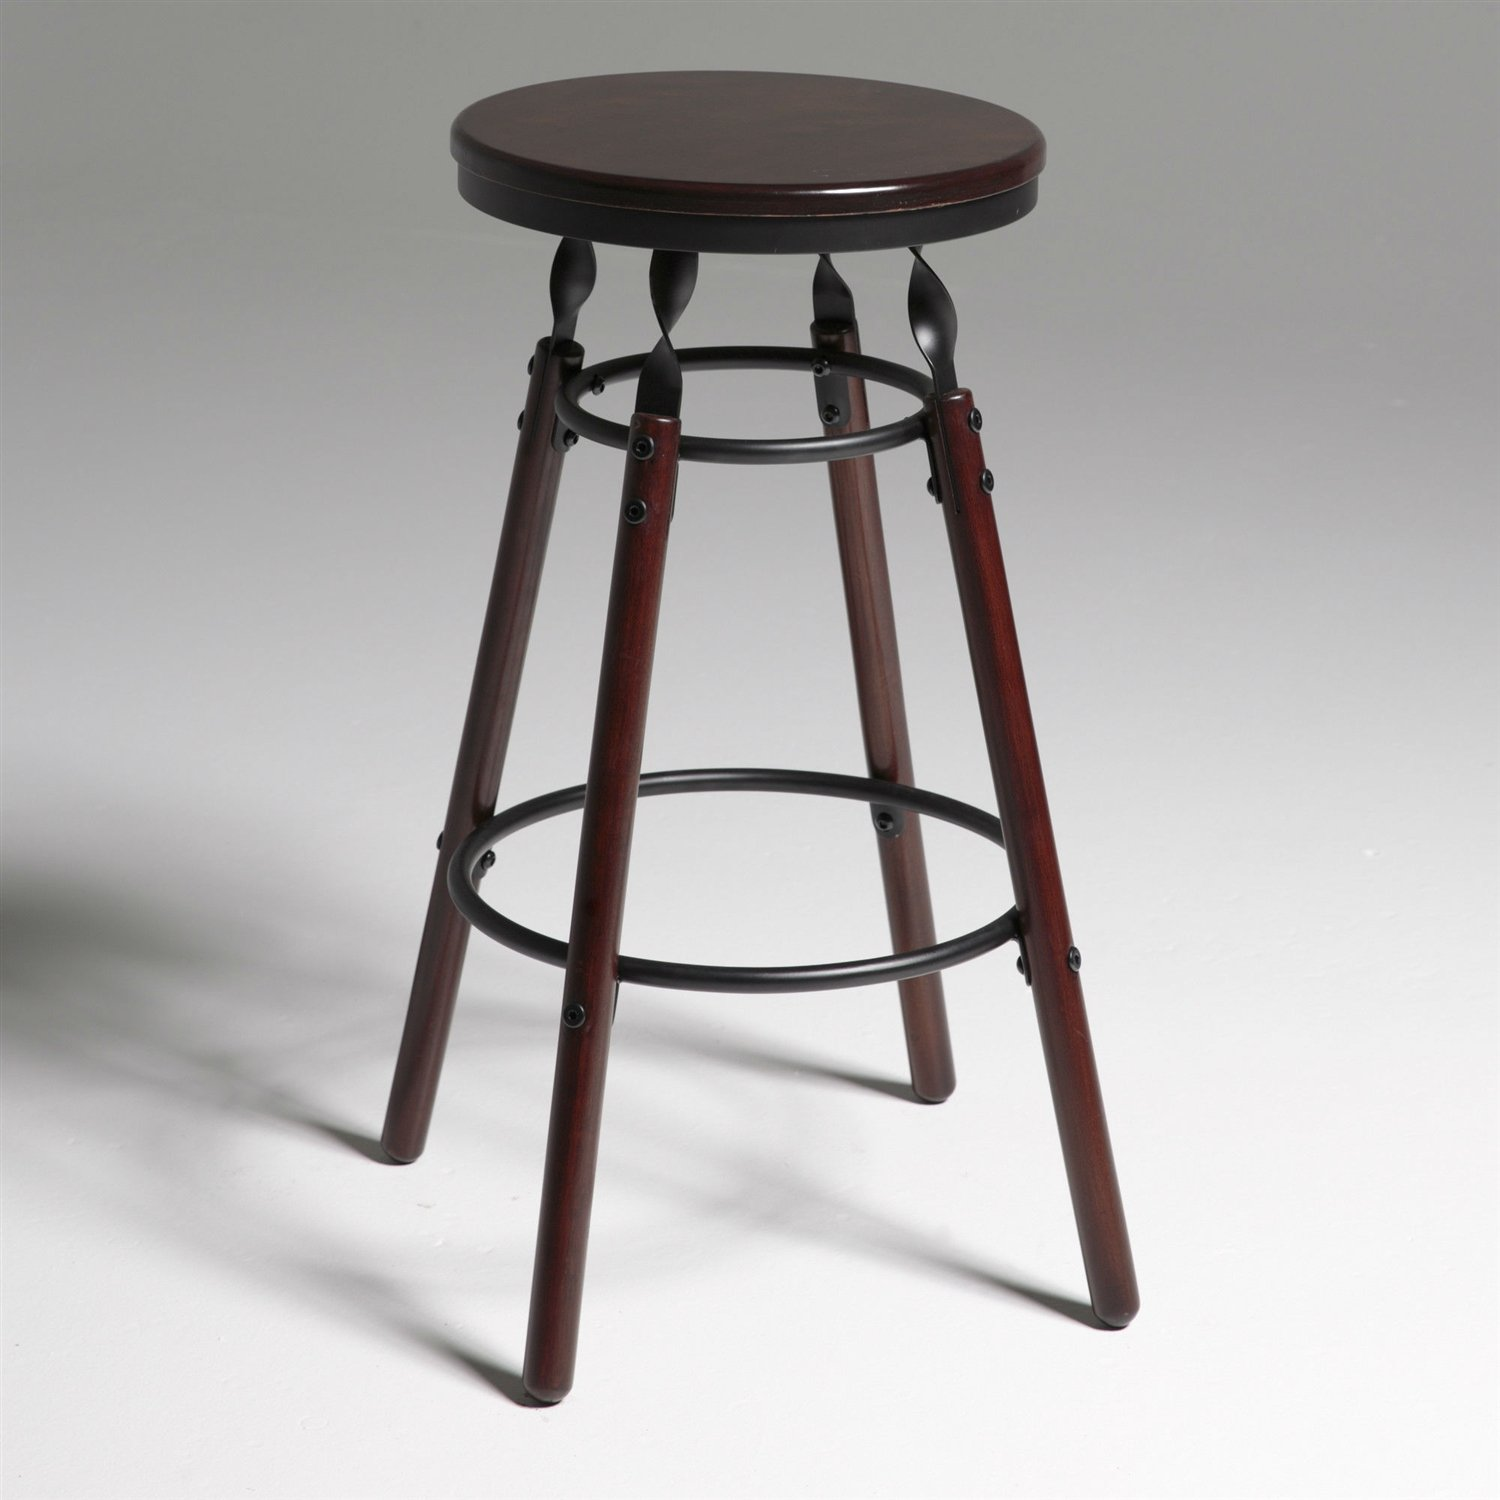 Dark Cherry Finish Wood Barstool With 30 Inch High Seat